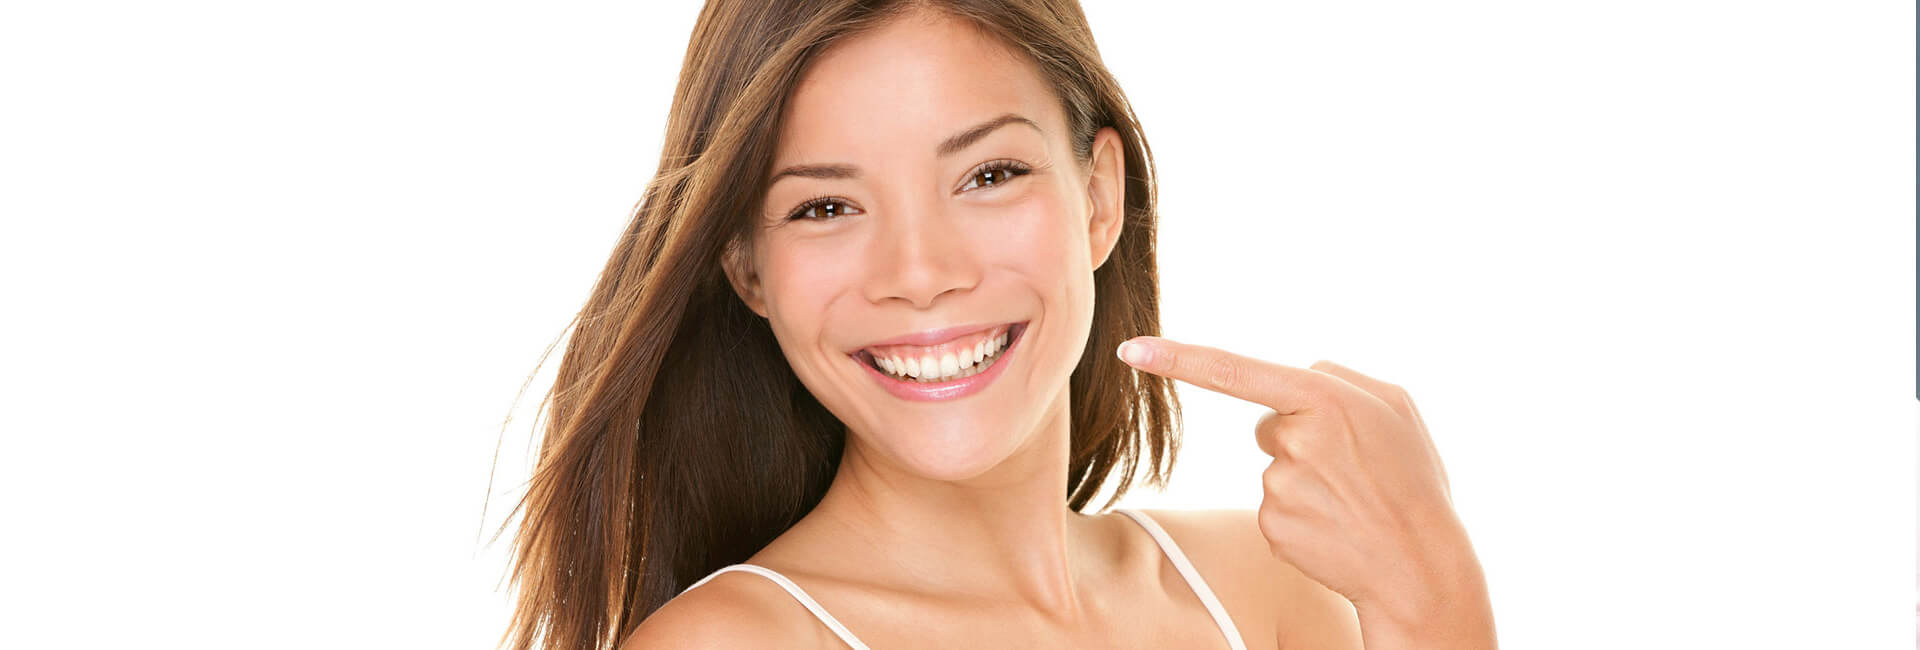 Happy female smiling pointing at her bright white teeth